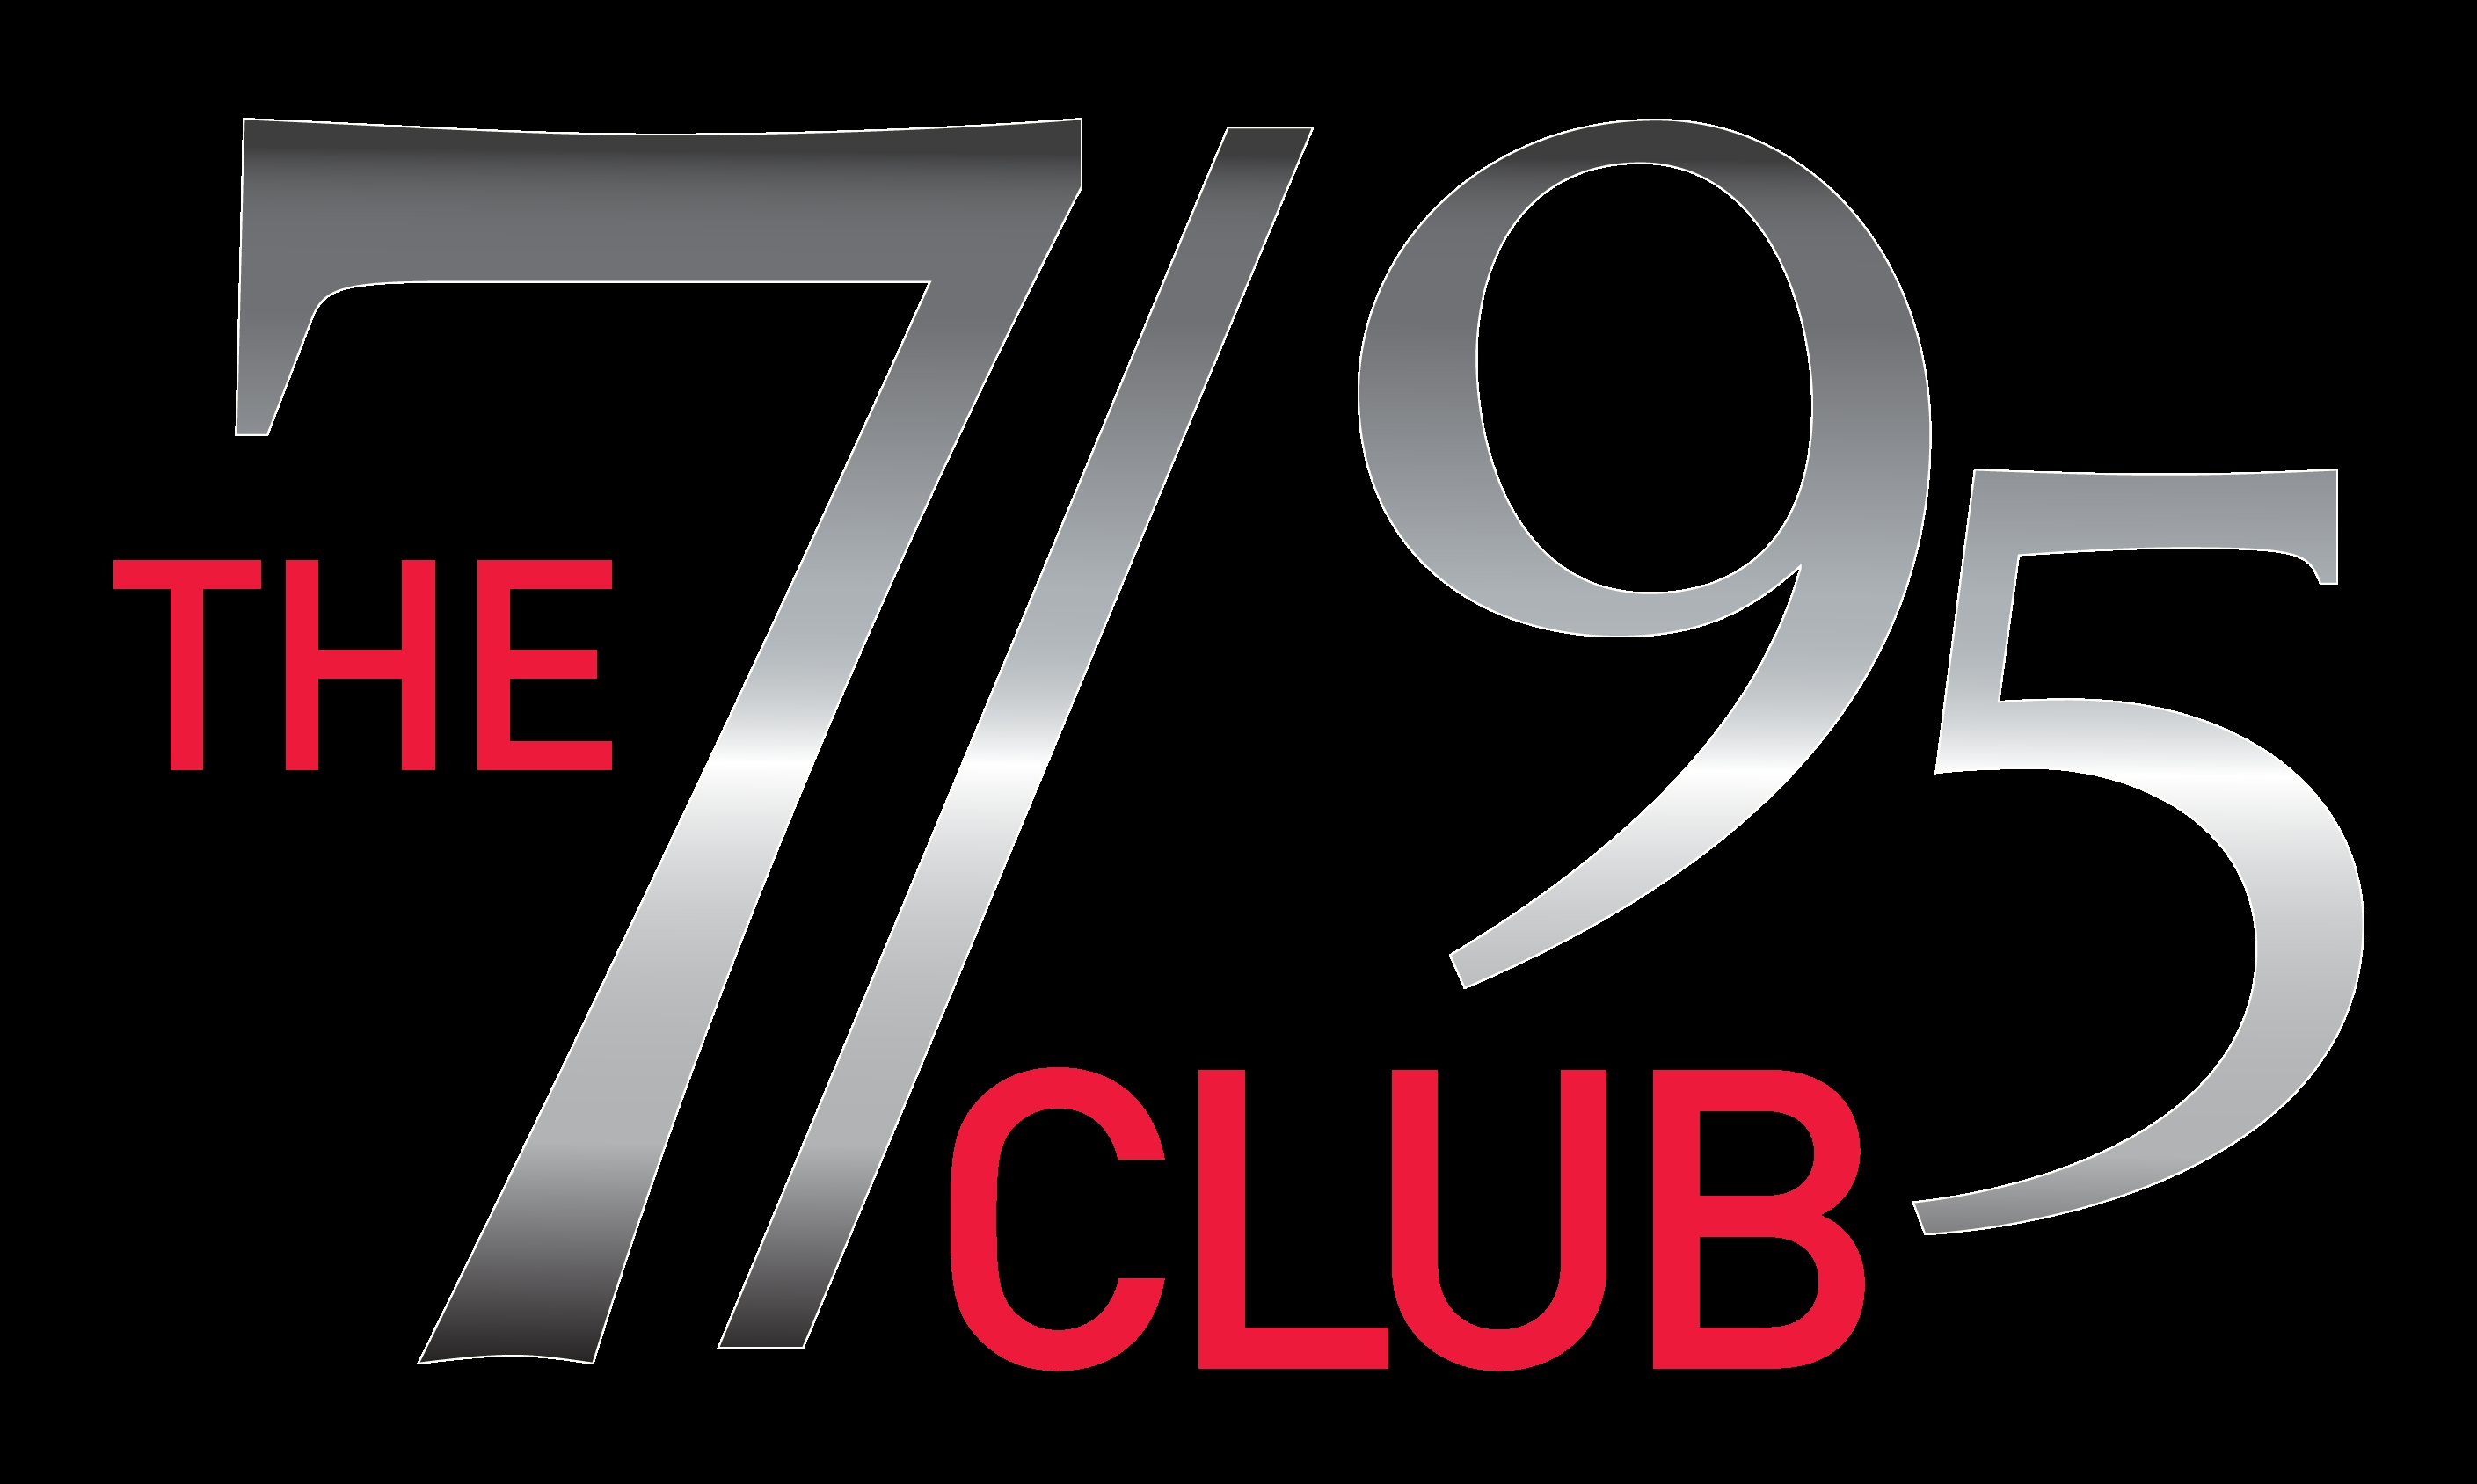 If your BMW is 7 years or older or has 95 000 miles or more this is an opportunity to join our new 7 95 Club At BMW of Bel Air